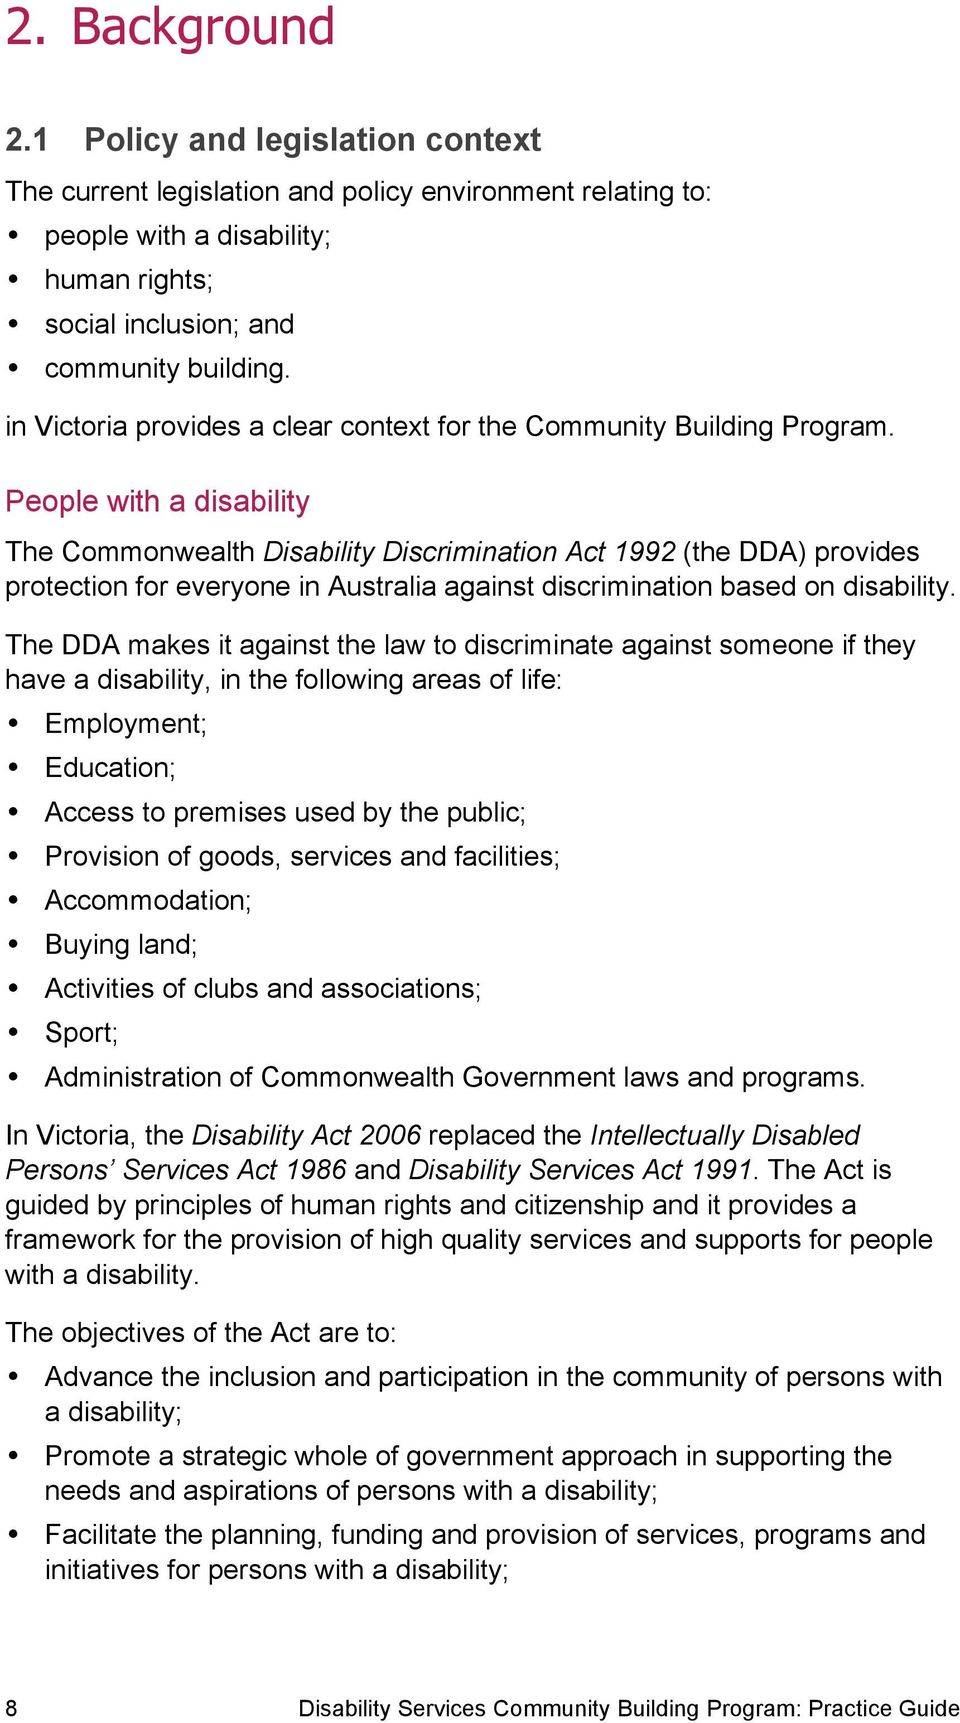 People with a disability The Commonwealth Disability Discrimination Act 1992 (the DDA) provides protection for everyone in Australia against discrimination based on disability.